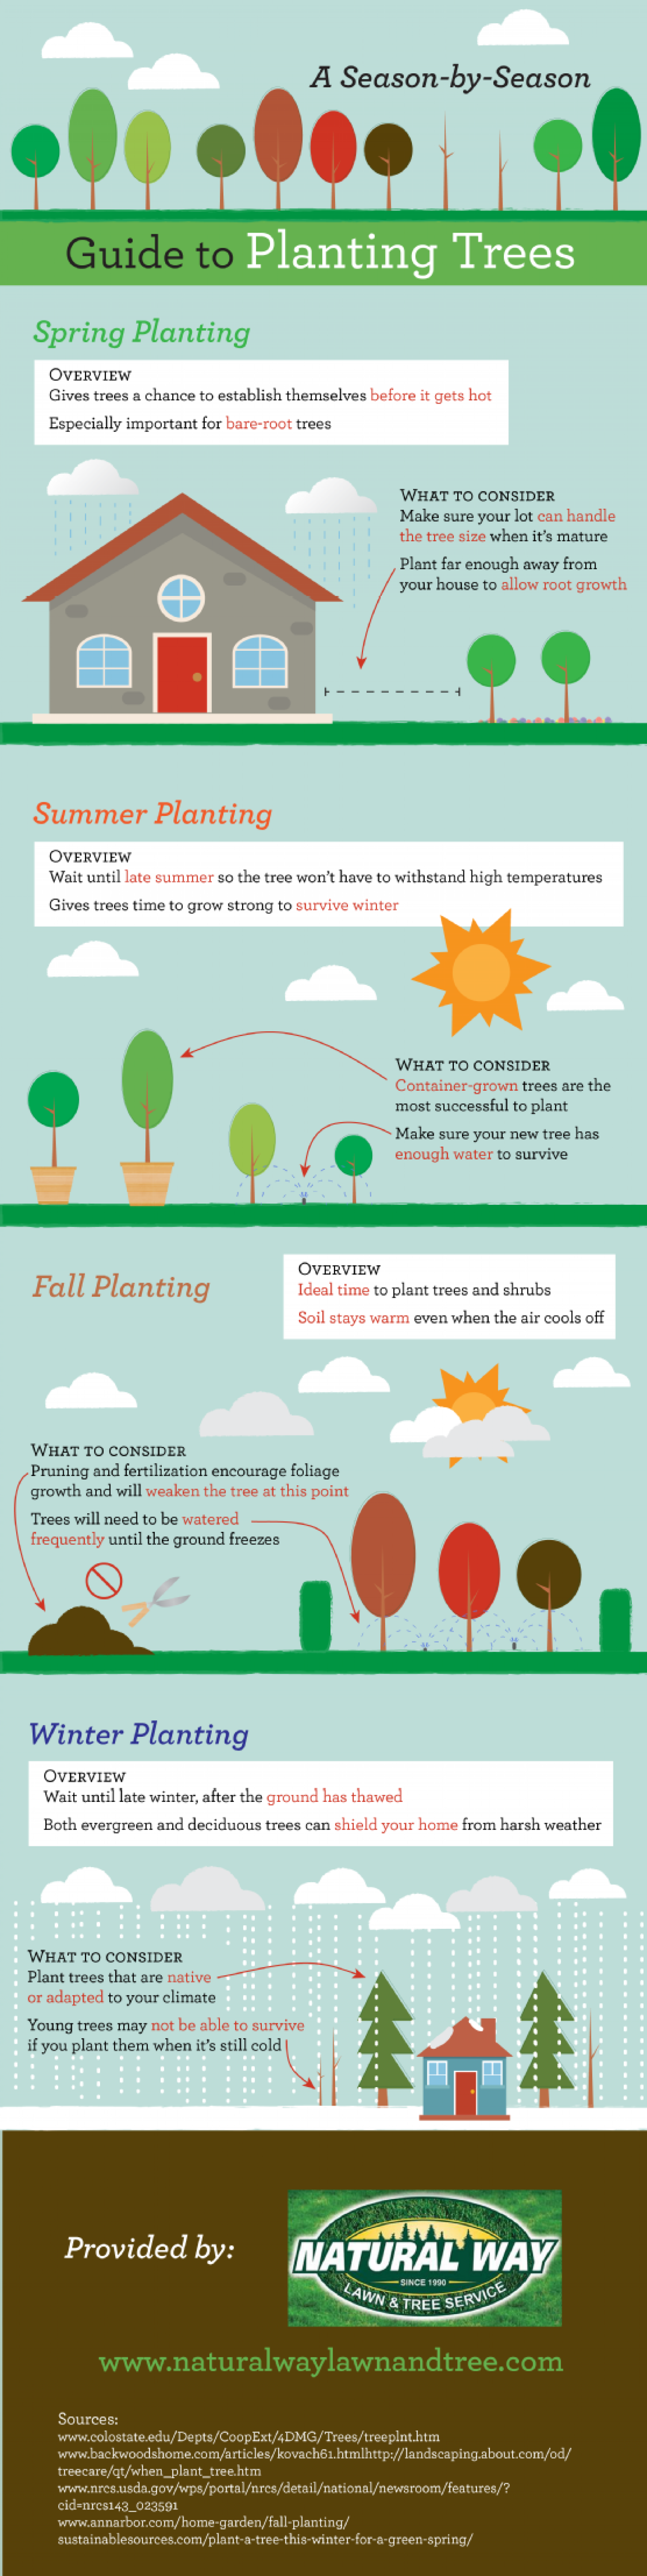 A Season-by-Season Guide to Planting Trees Infographic